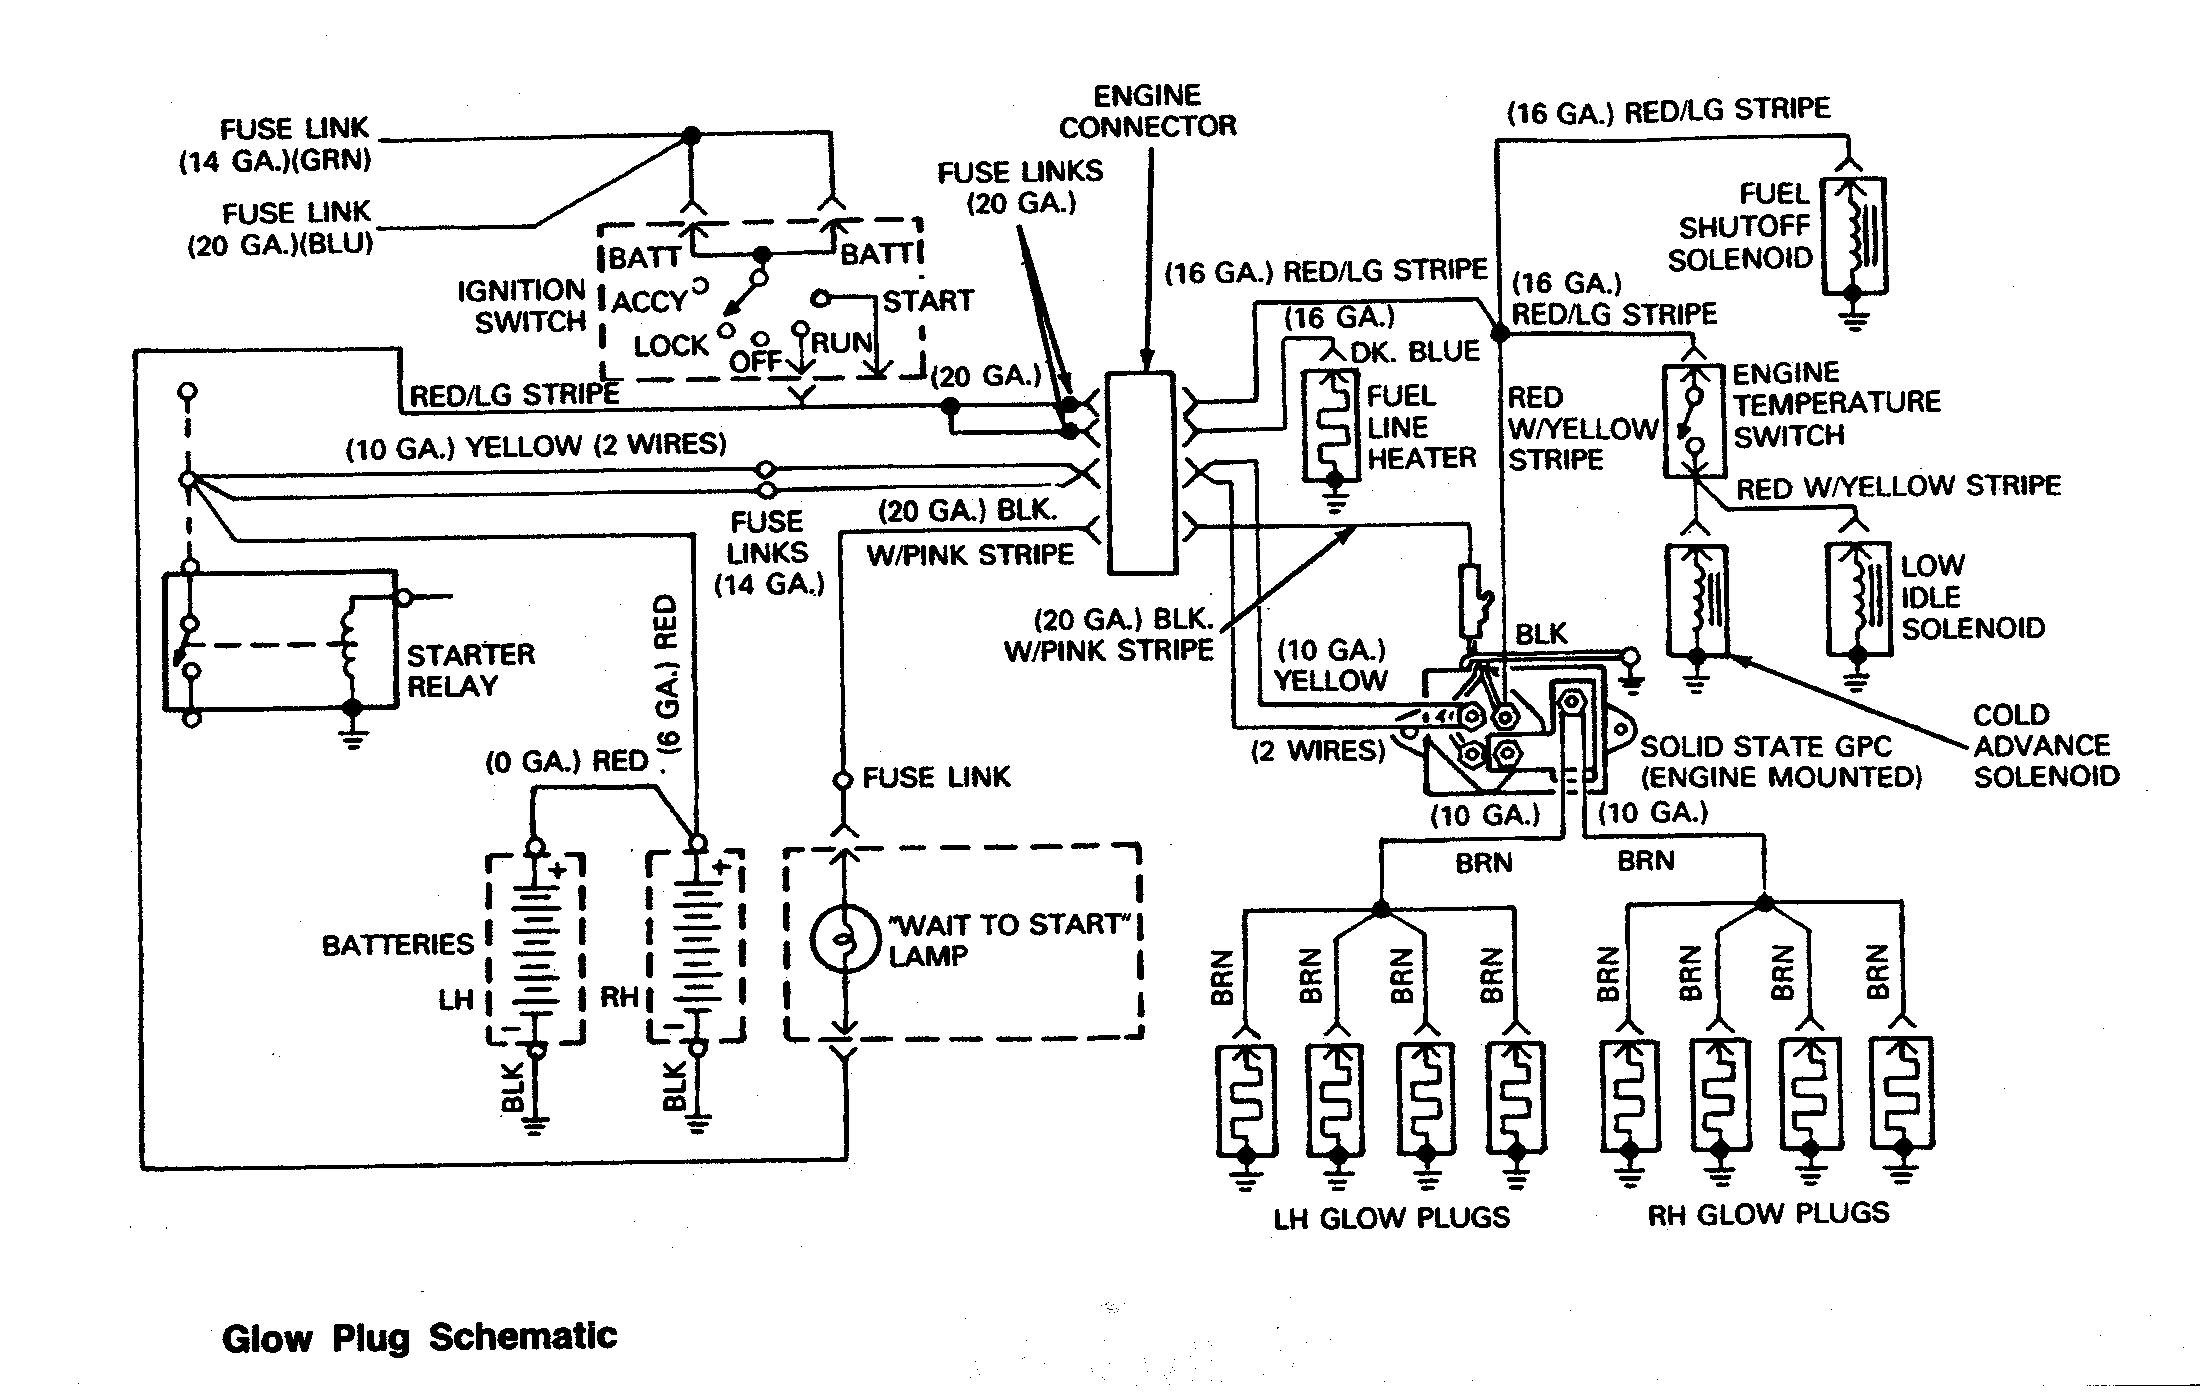 7 3 Powerstroke Parts Diagram Glow Engine Diagram Experts Wiring Diagram • Of 7 3 Powerstroke Parts Diagram 6 0 Powerstroke Injector Wiring Diagram Reference Wiring Harness 7 3